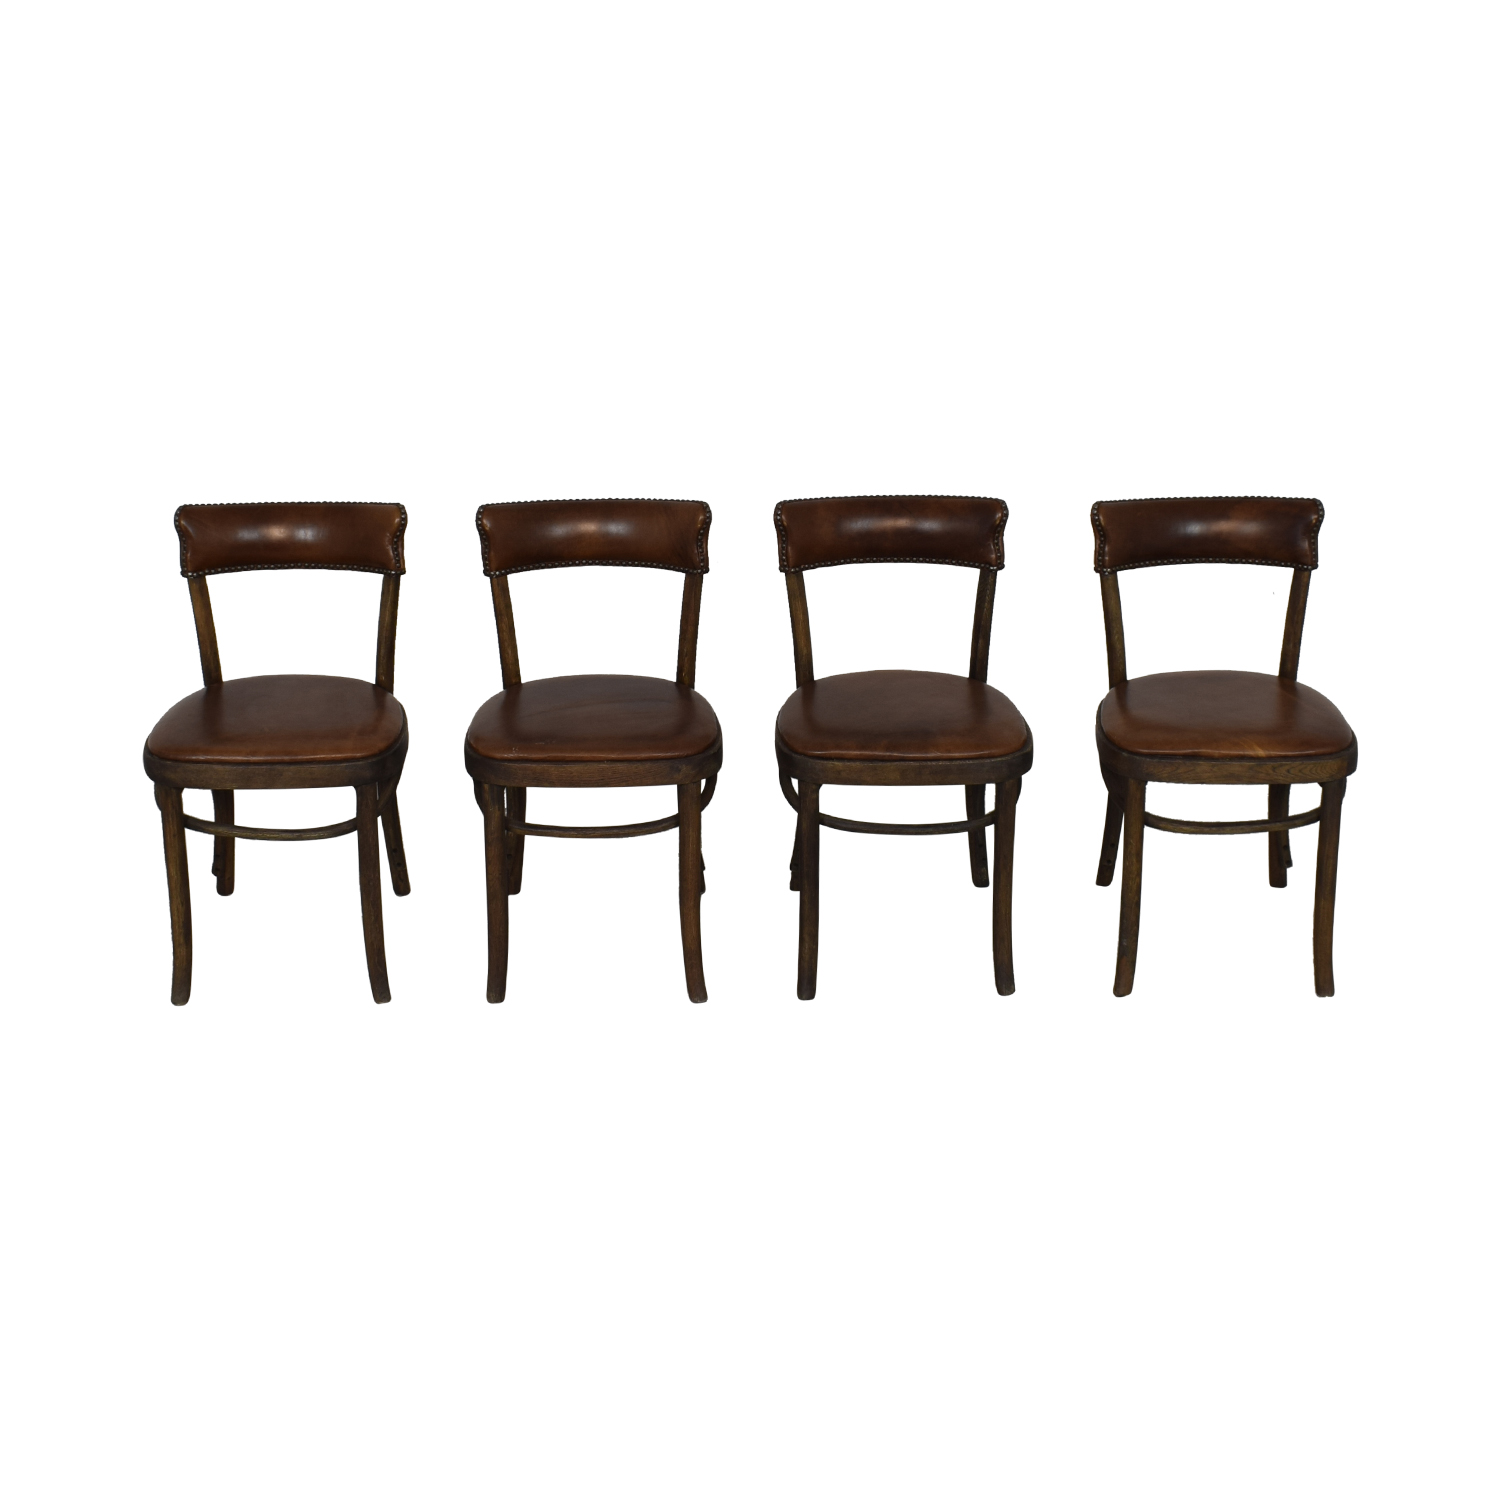 Restoration Hardware Restoration Hardware Vienna Cafe Leather Side Chairs on sale